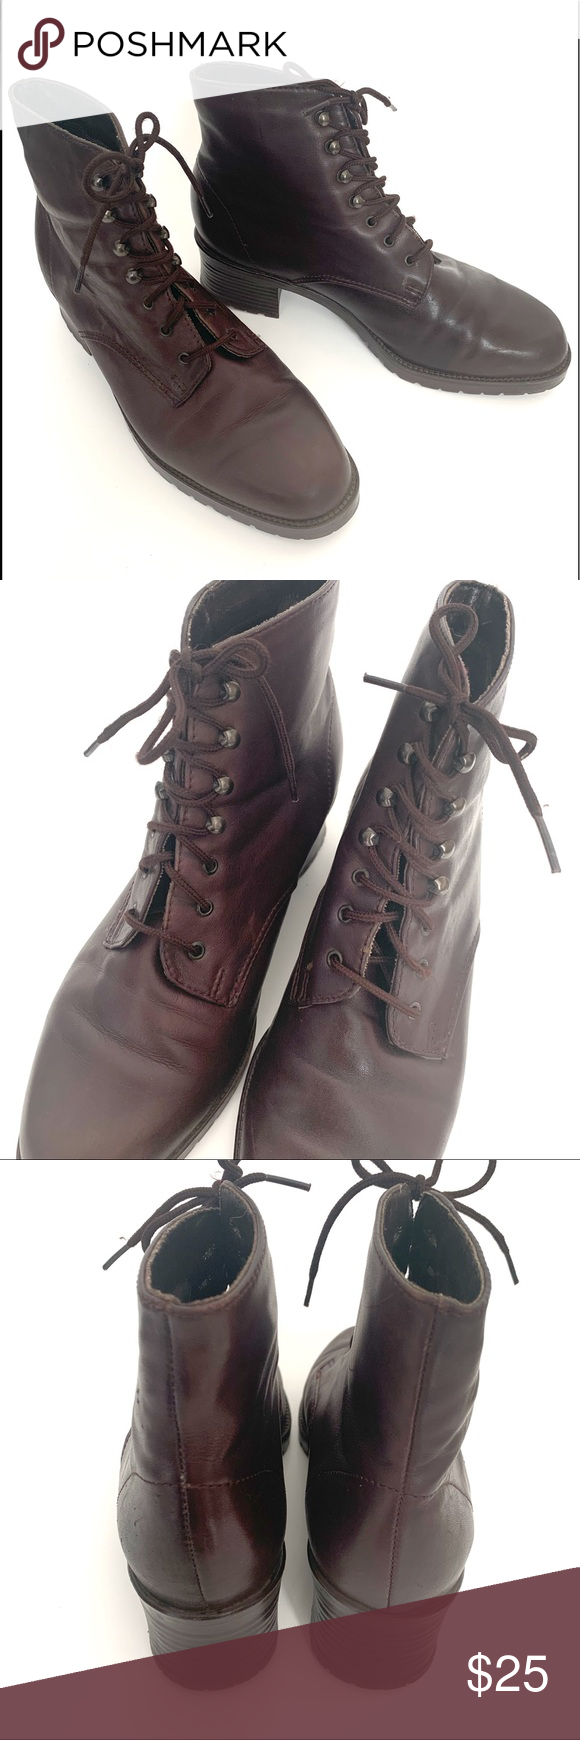 White Mountain vintage 90s lace up